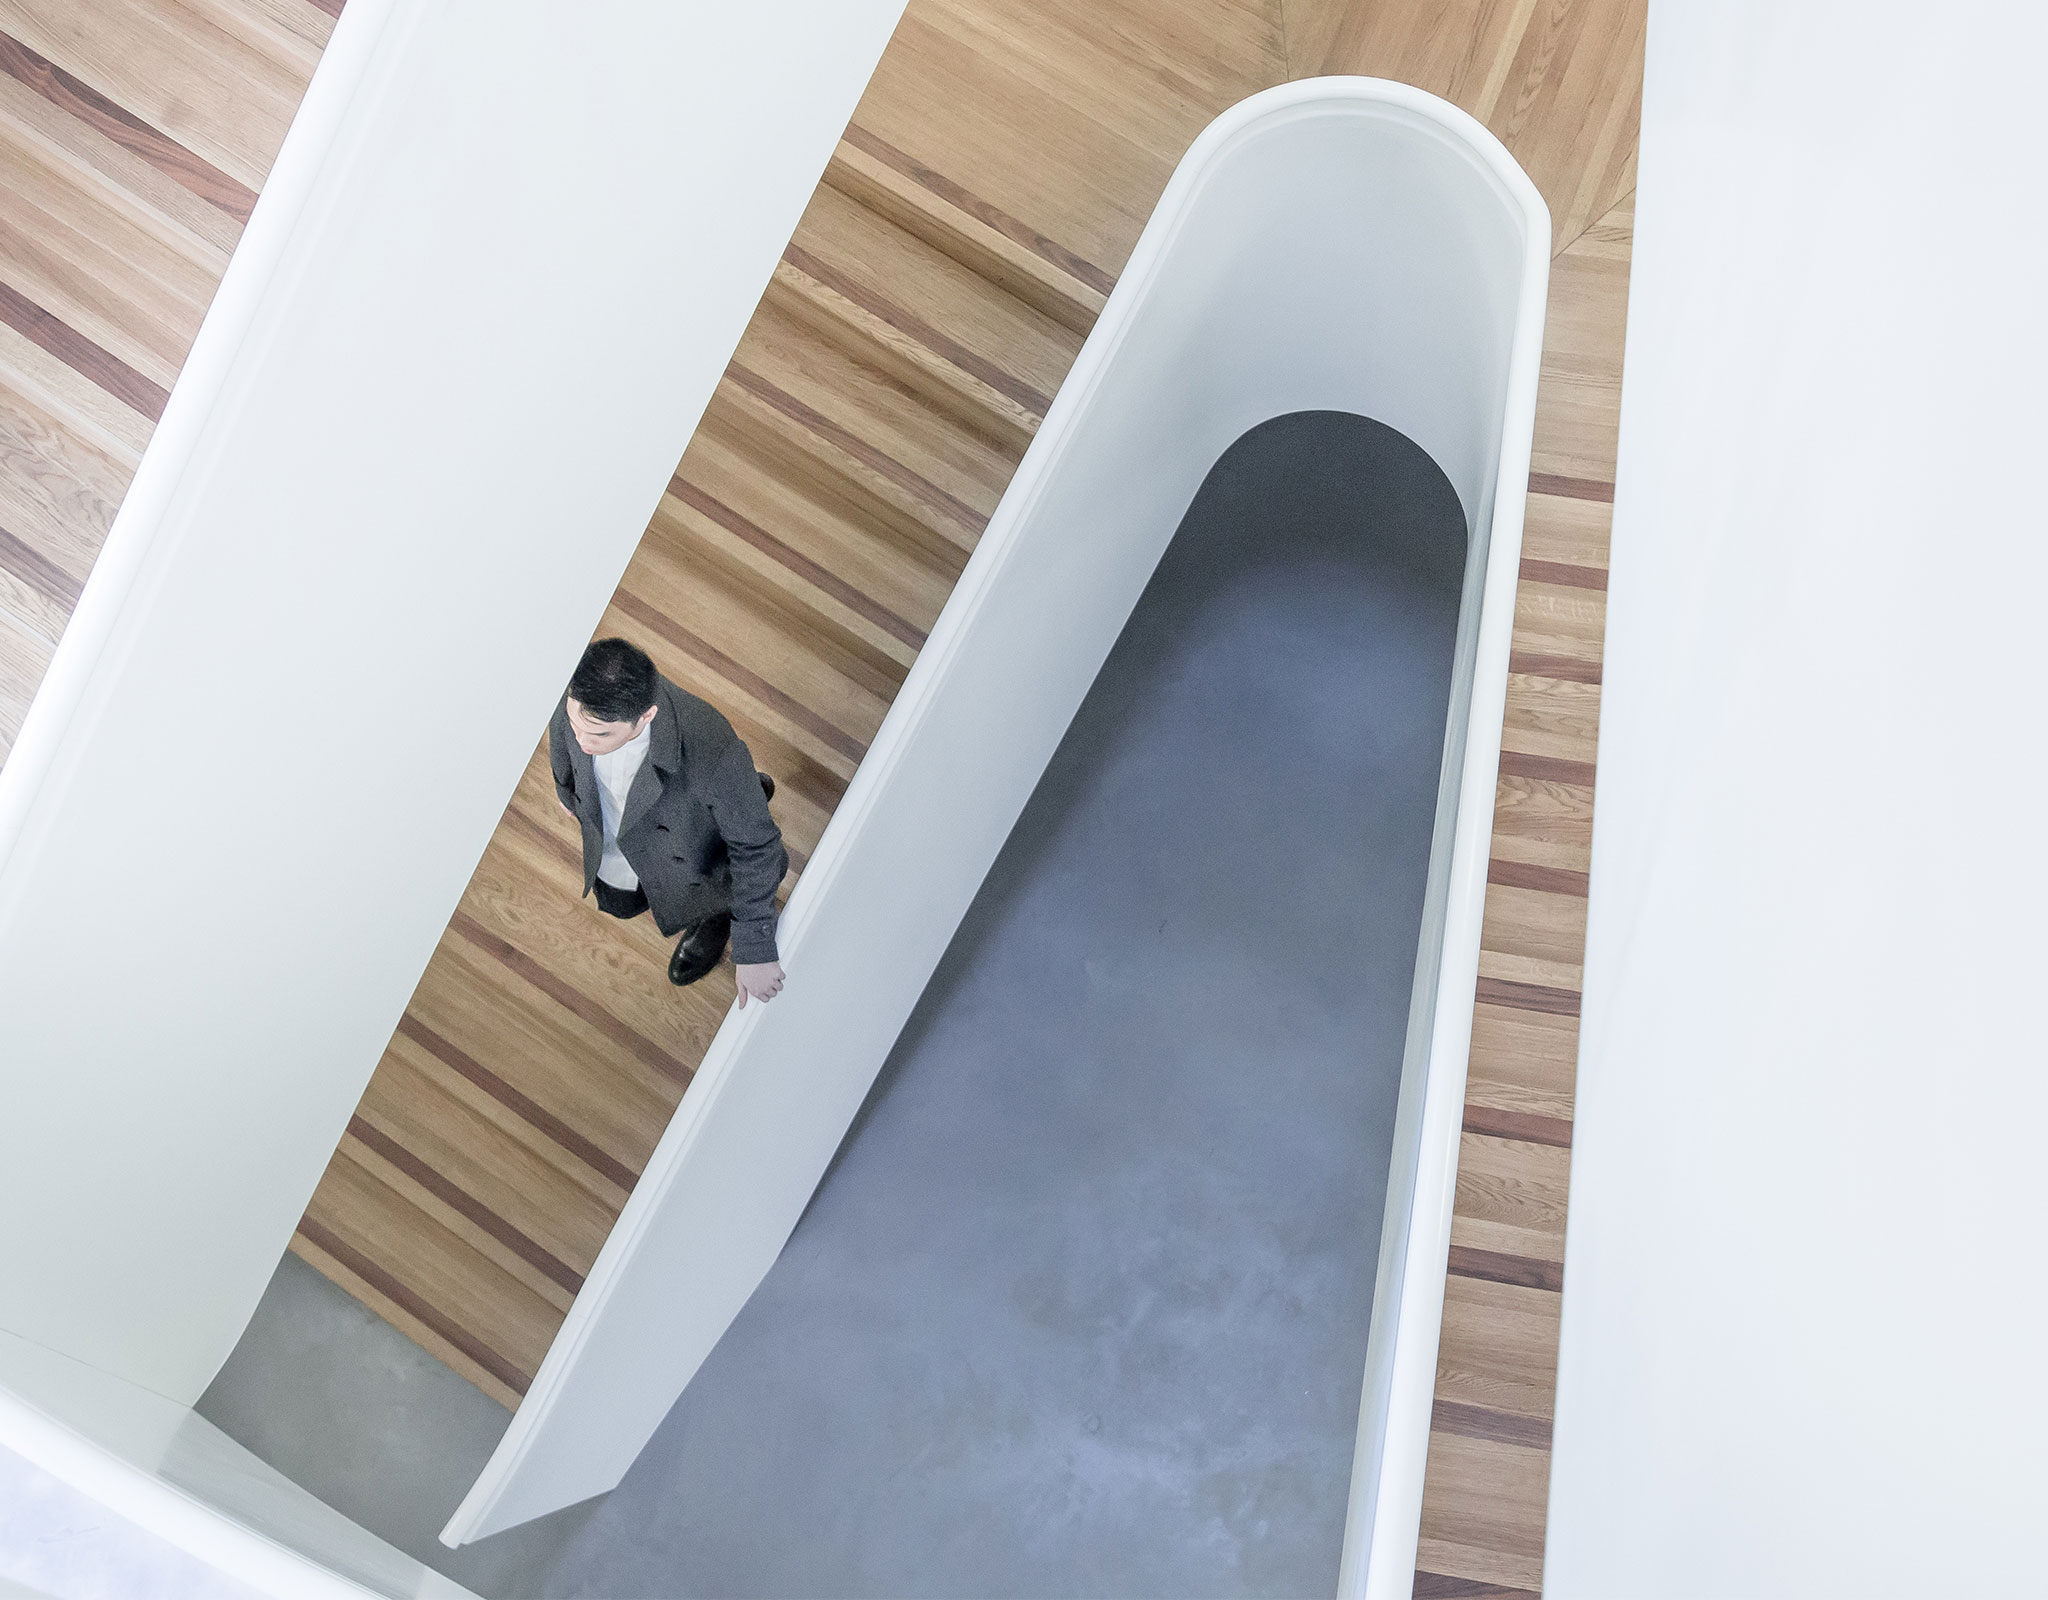 Man walking on stairs in modern building